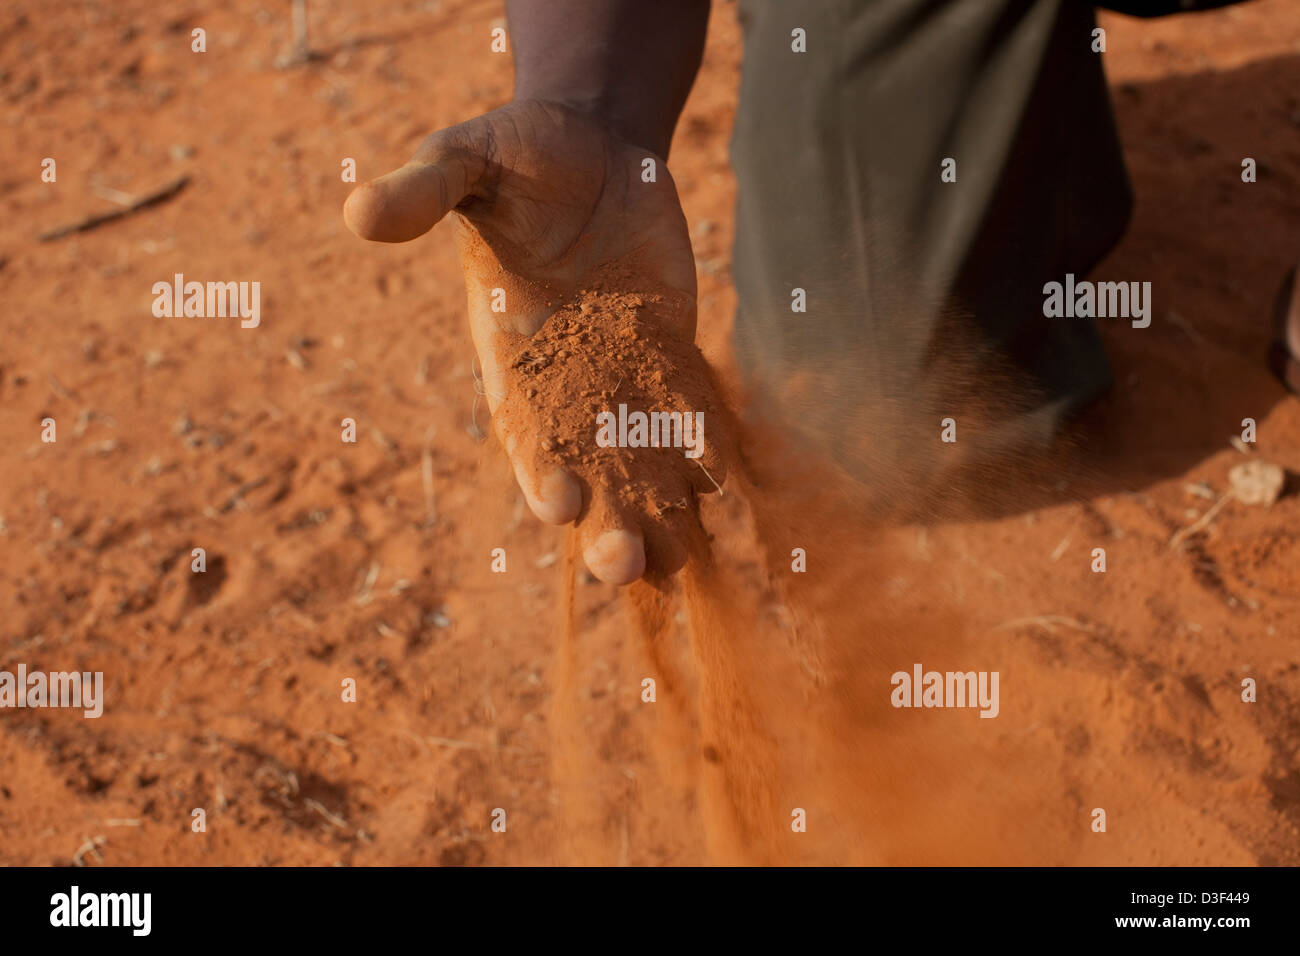 DAWDER, NORTH OF ELWAK, EASTERN KENYA, 1st SEPTEMBER 2009: There has been no rain for 18 months. - Stock Image